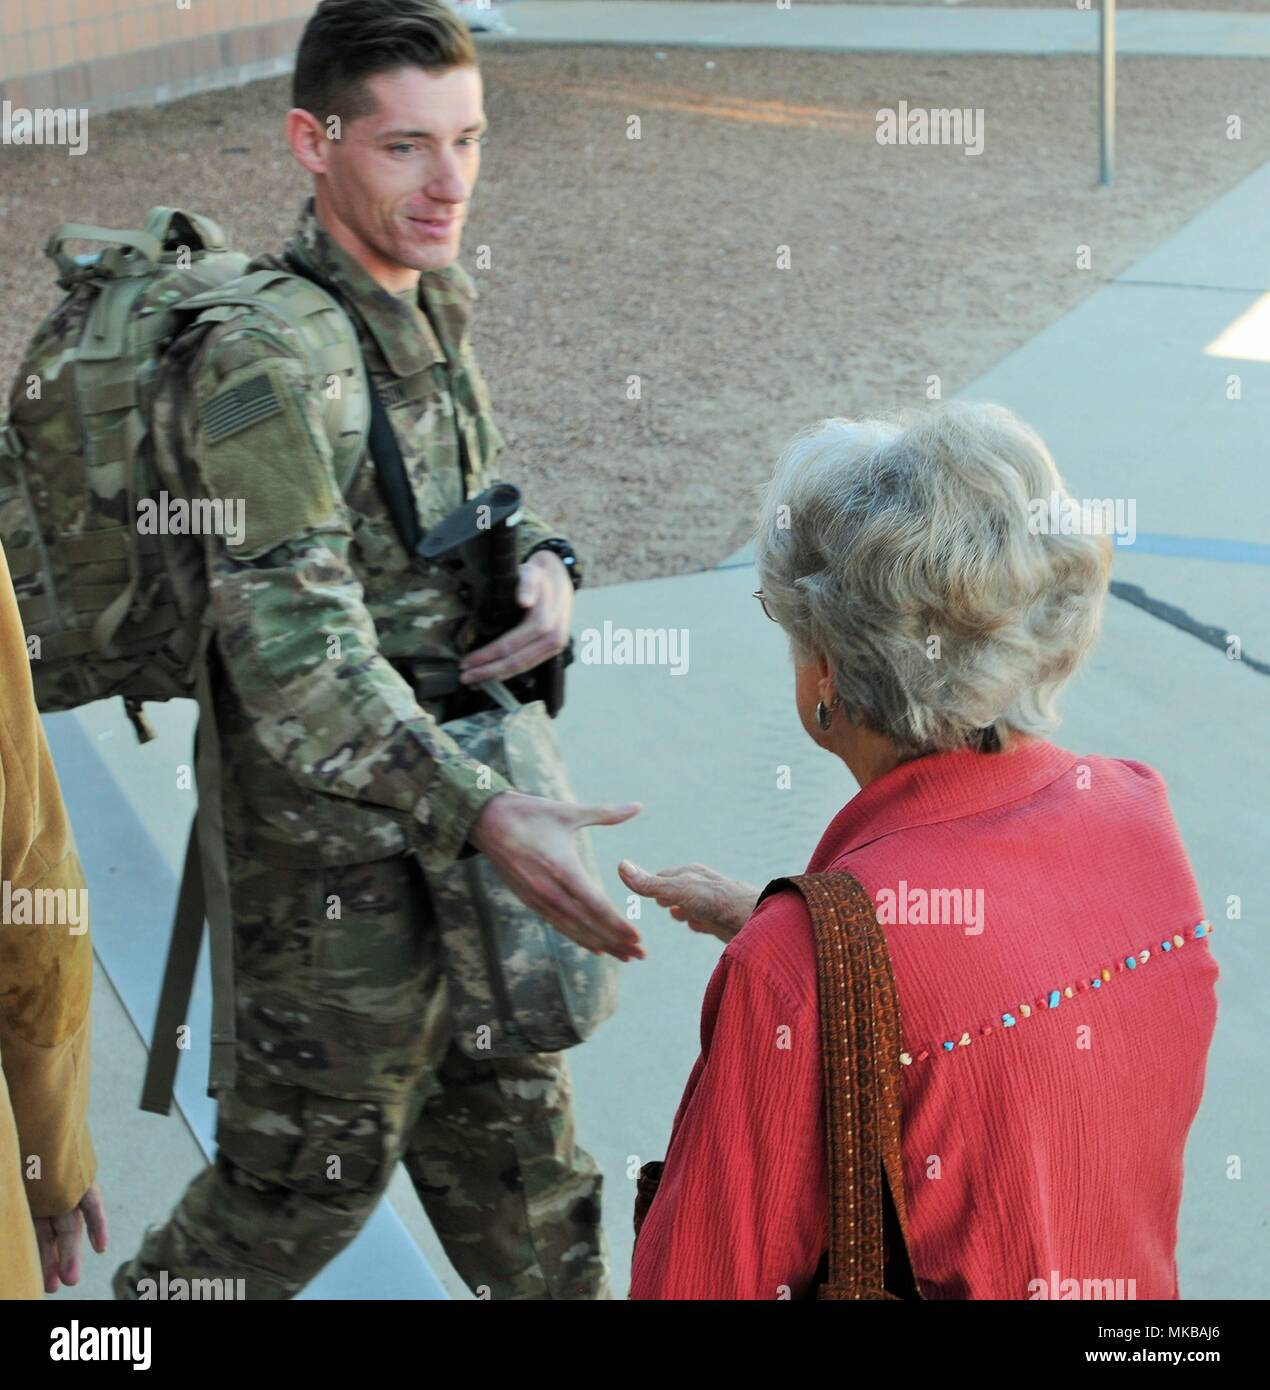 Soldier Care Packages Stockfotos & Soldier Care Packages Bilder - Alamy